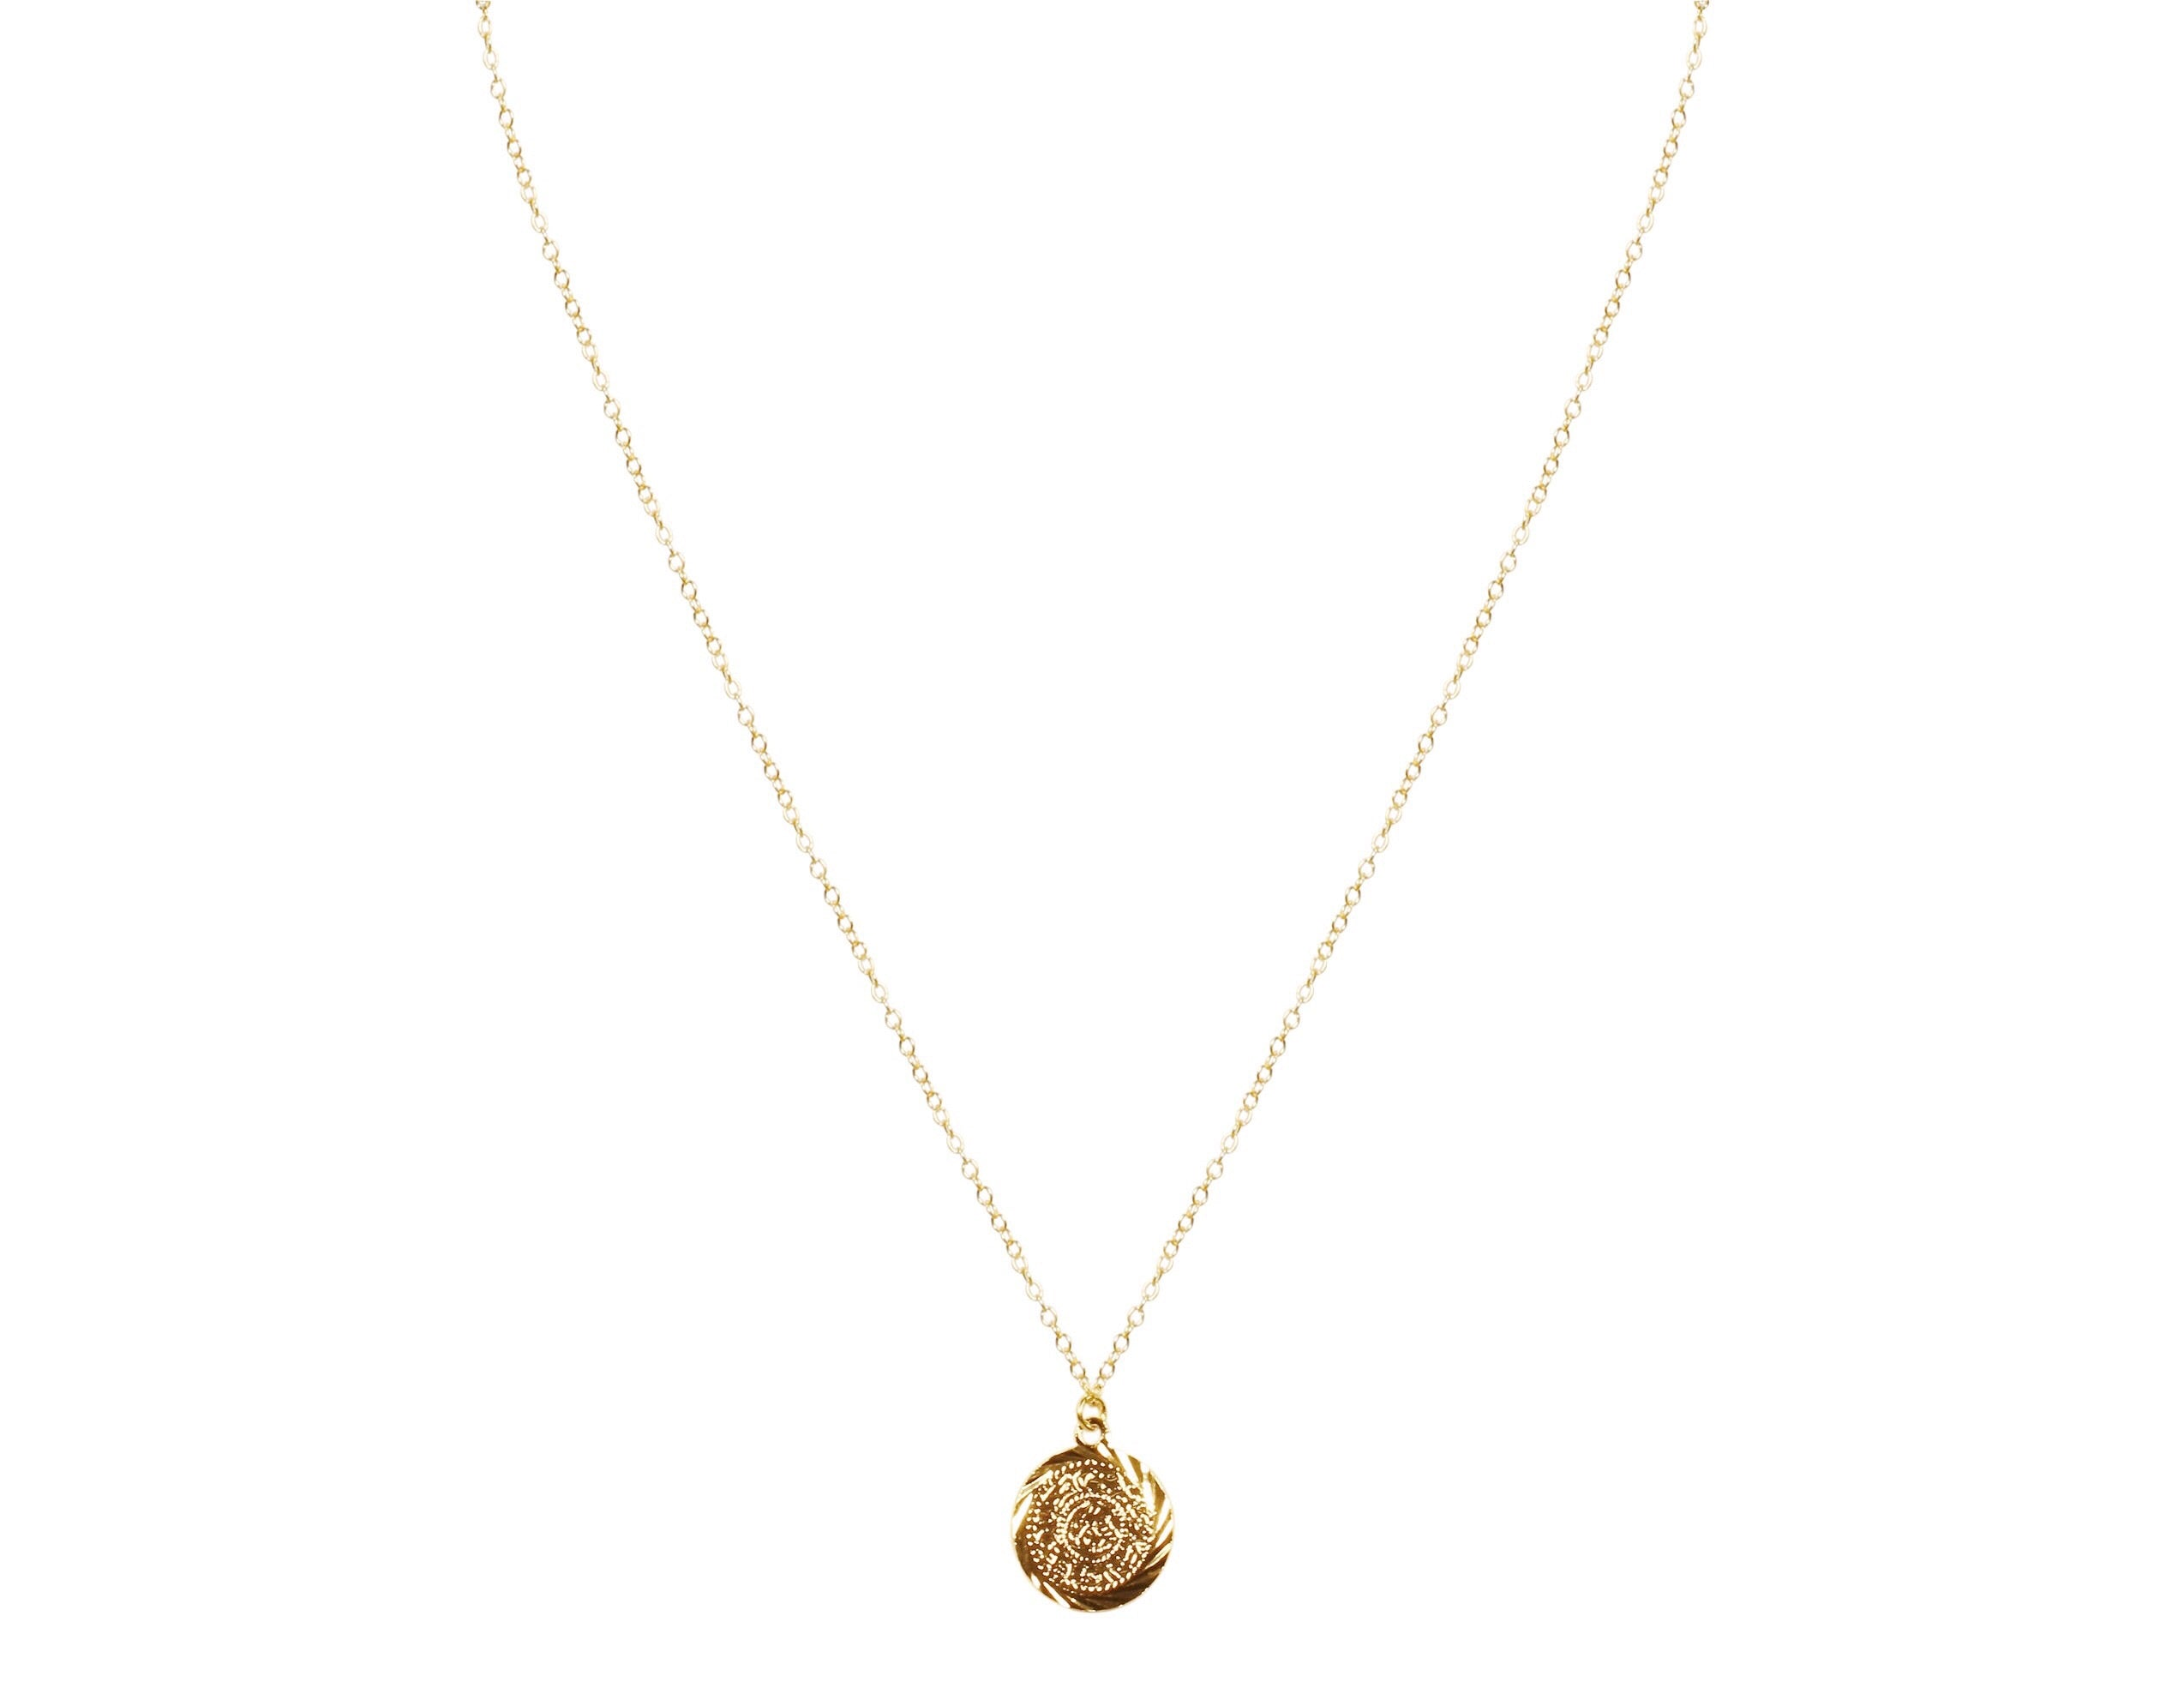 Lori Coin Necklace